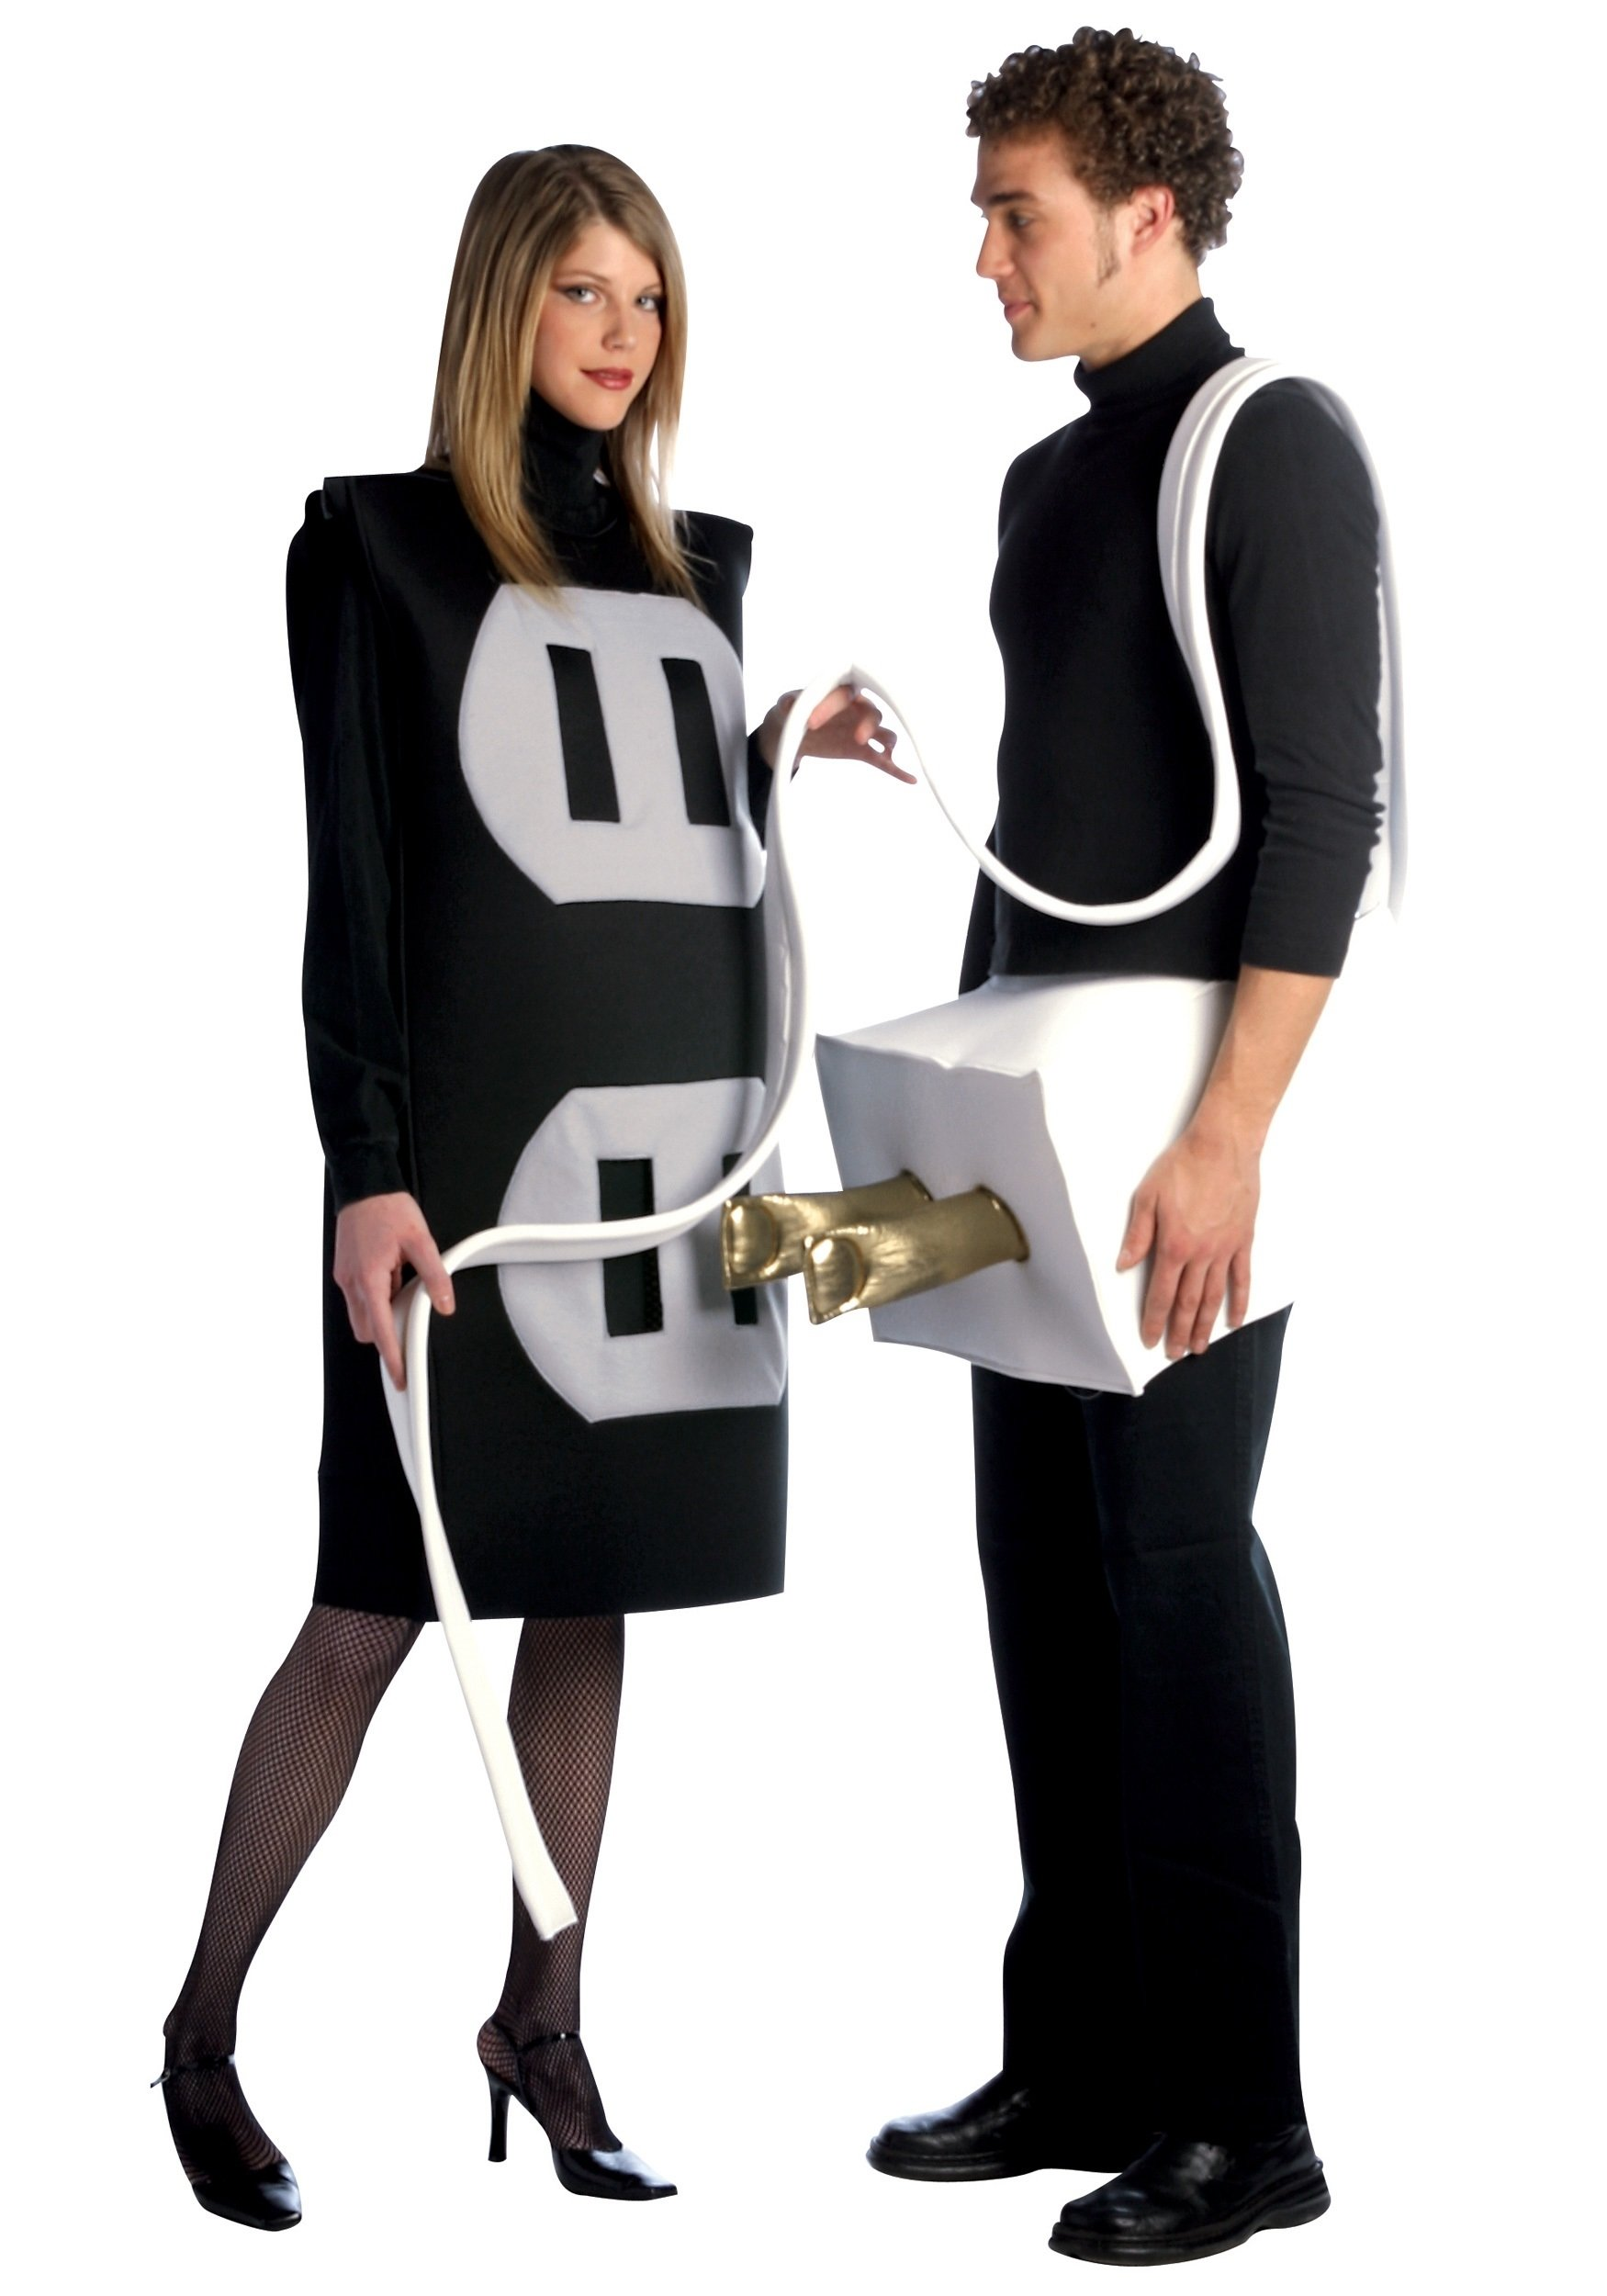 10 Stylish Ideas For Adult Halloween Costumes plug and socket costume funny couples costume ideas 10 2020